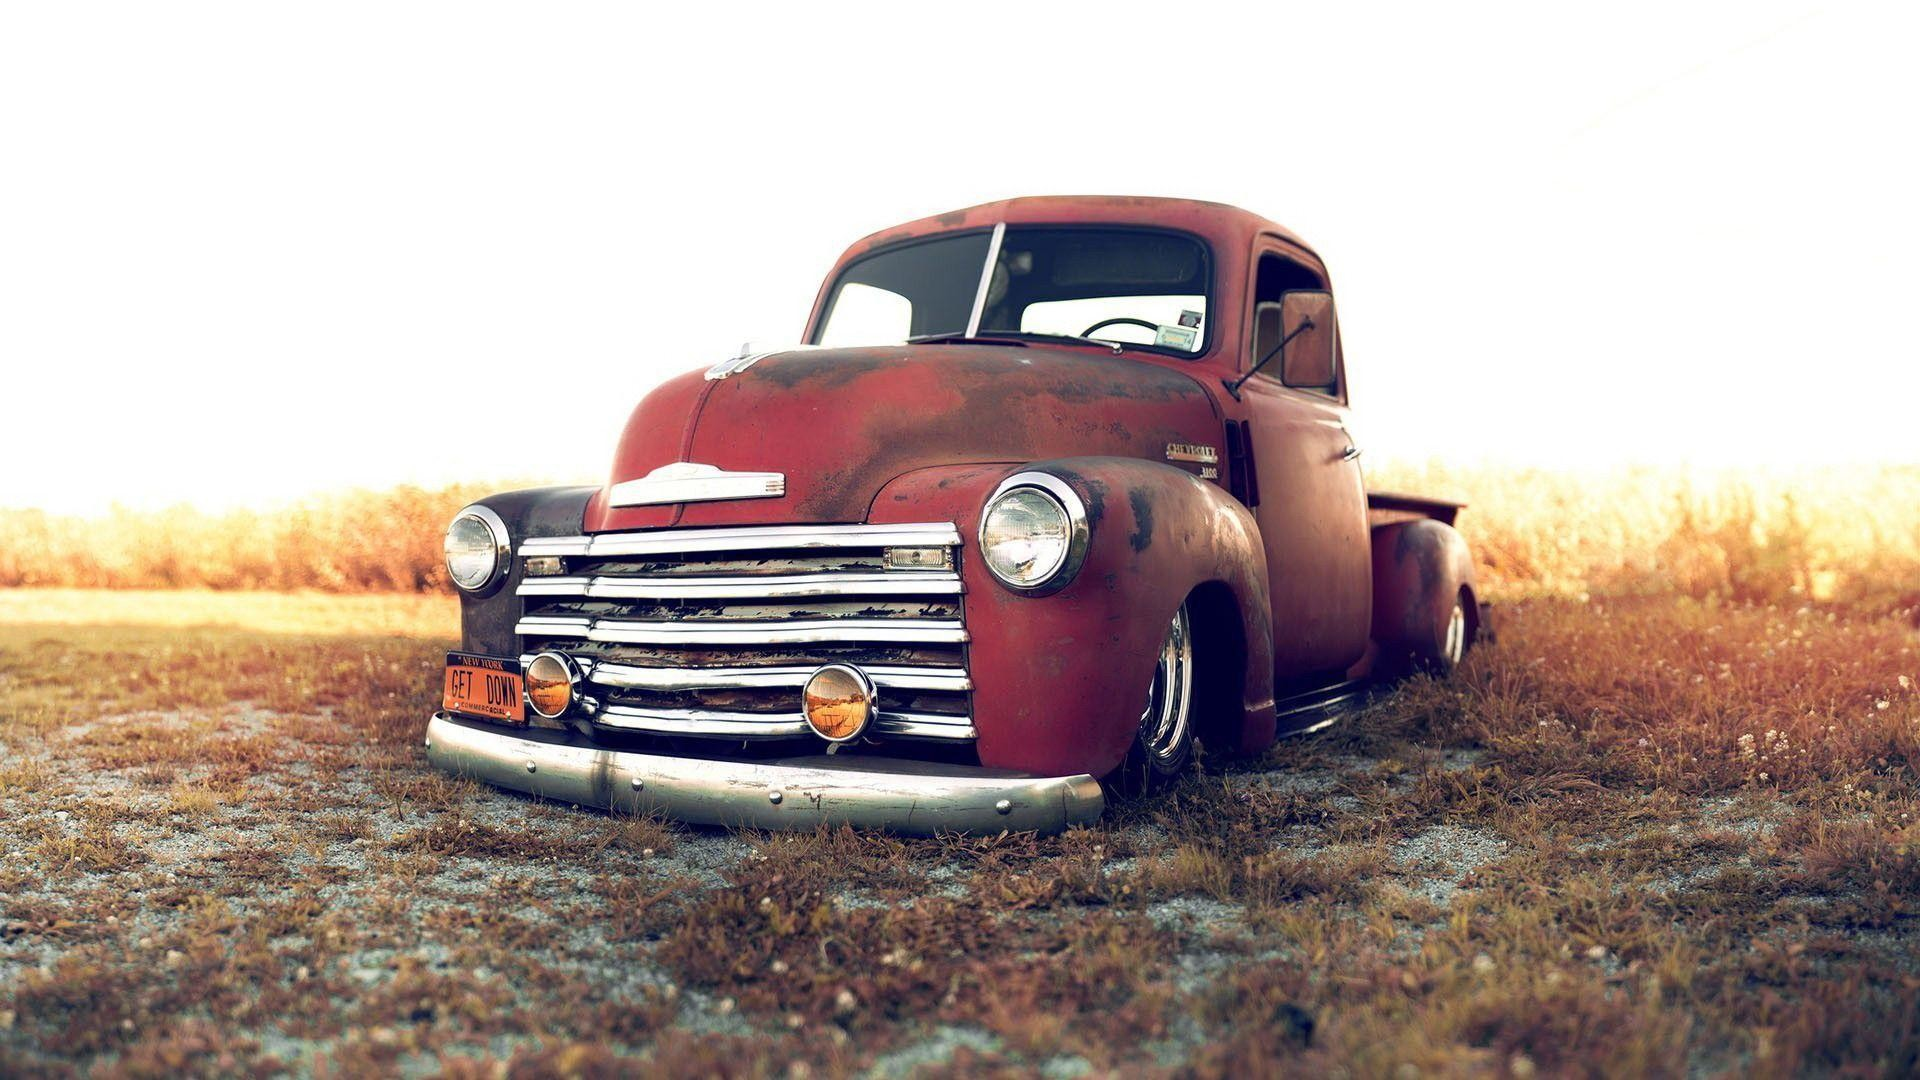 Res: 1920x1080, Chevy Truck Wallpaper Backgrounds Full Hd Pics Of Smartphone Chevy Truck  Wallpaper